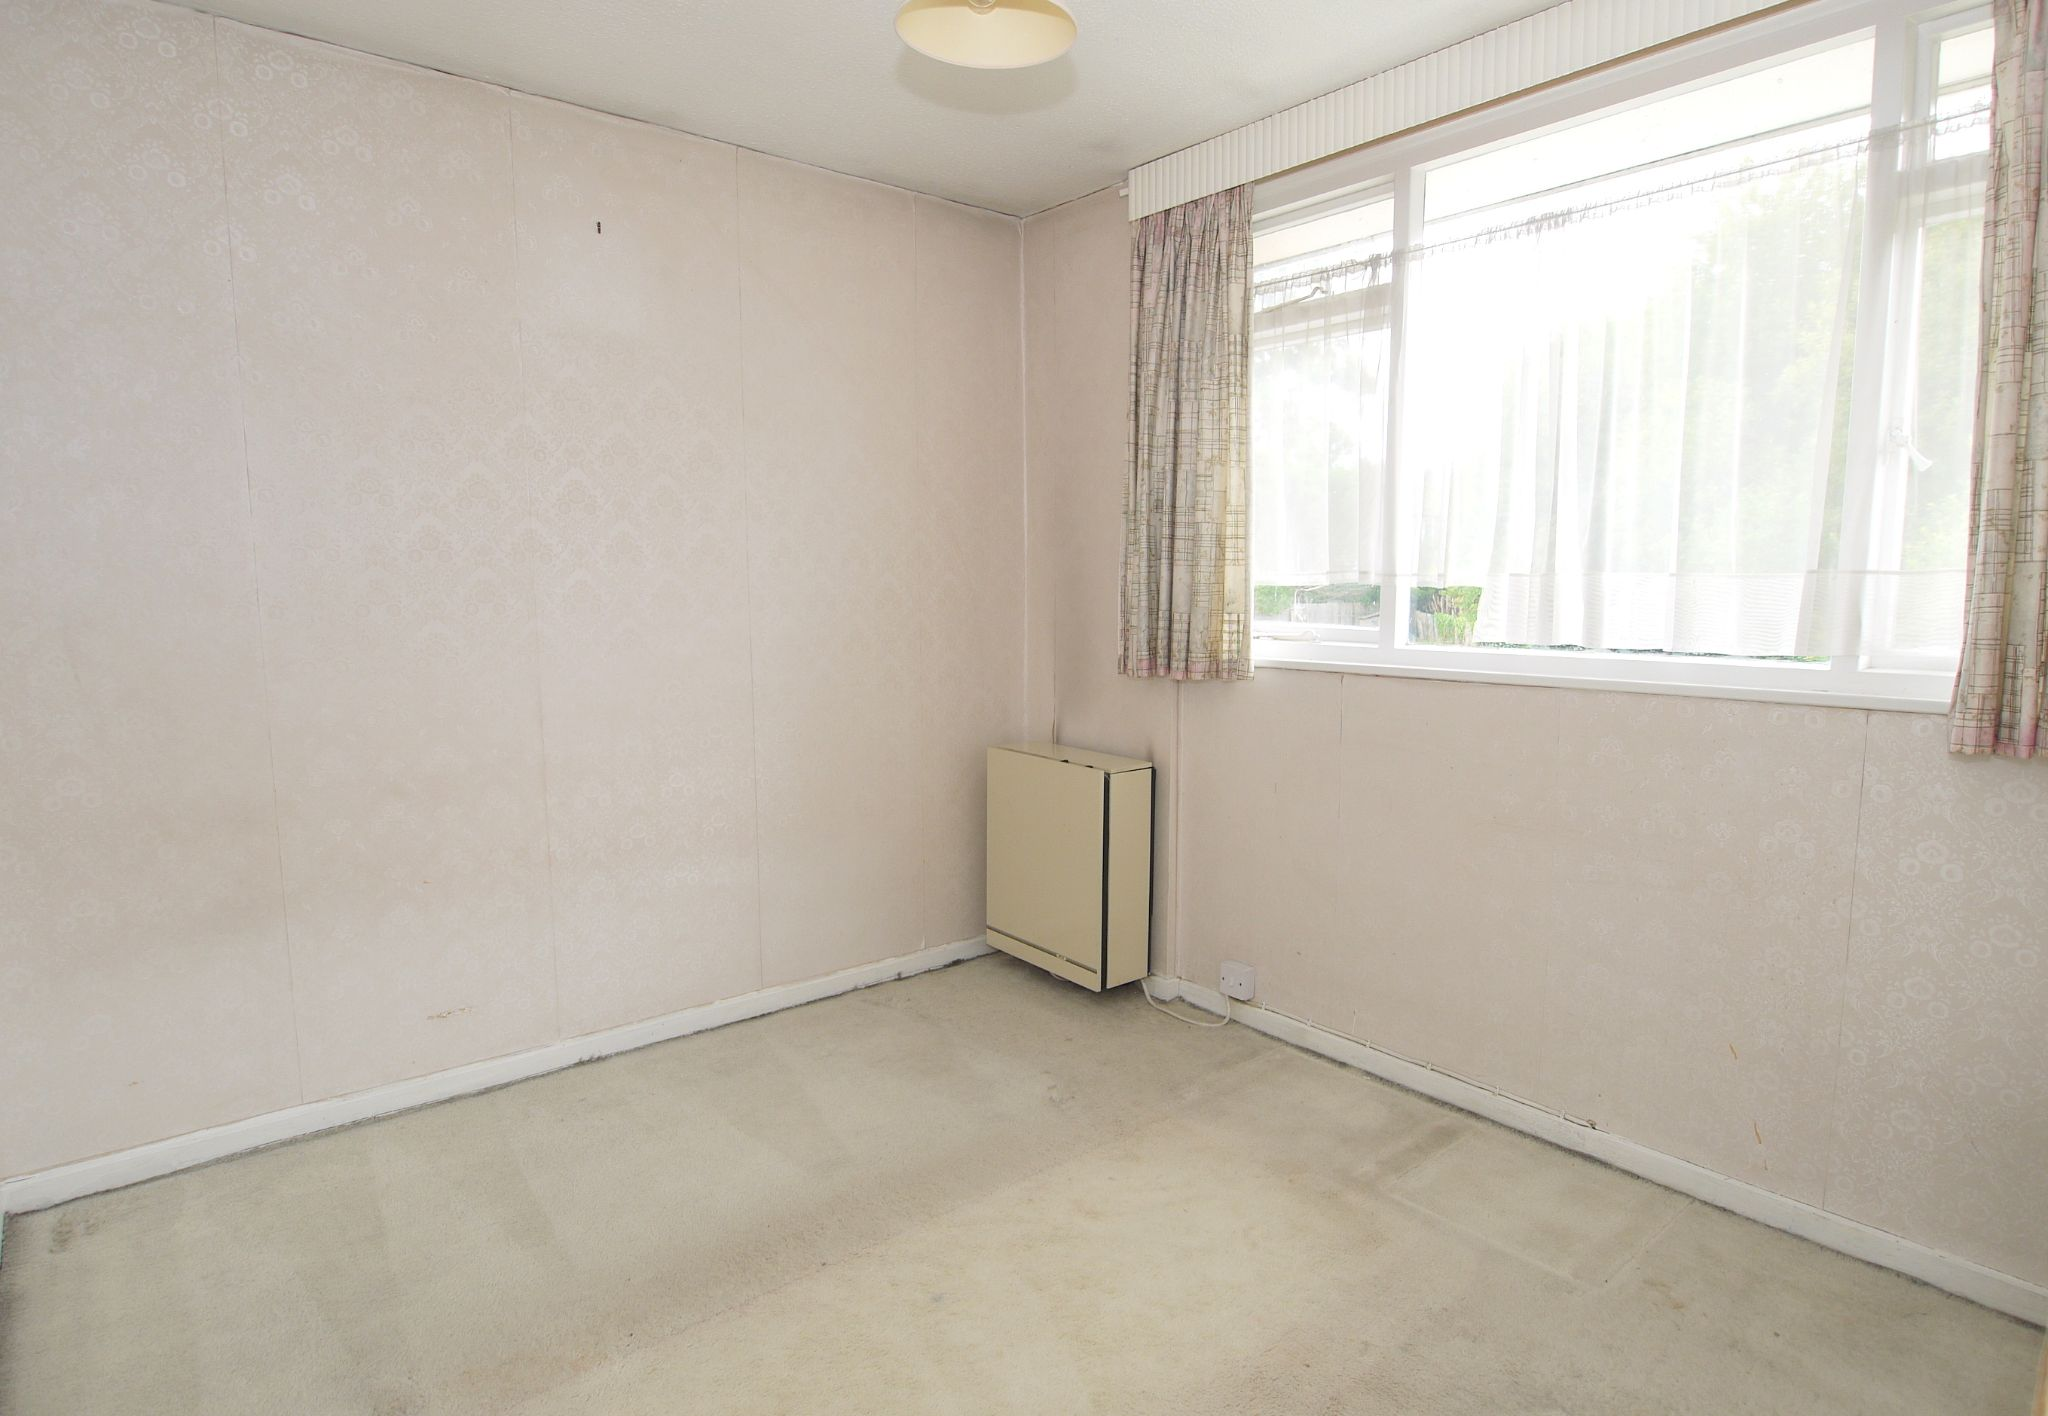 5 bedroom semi-detached house For Sale in Sevenoaks - Photograph 7